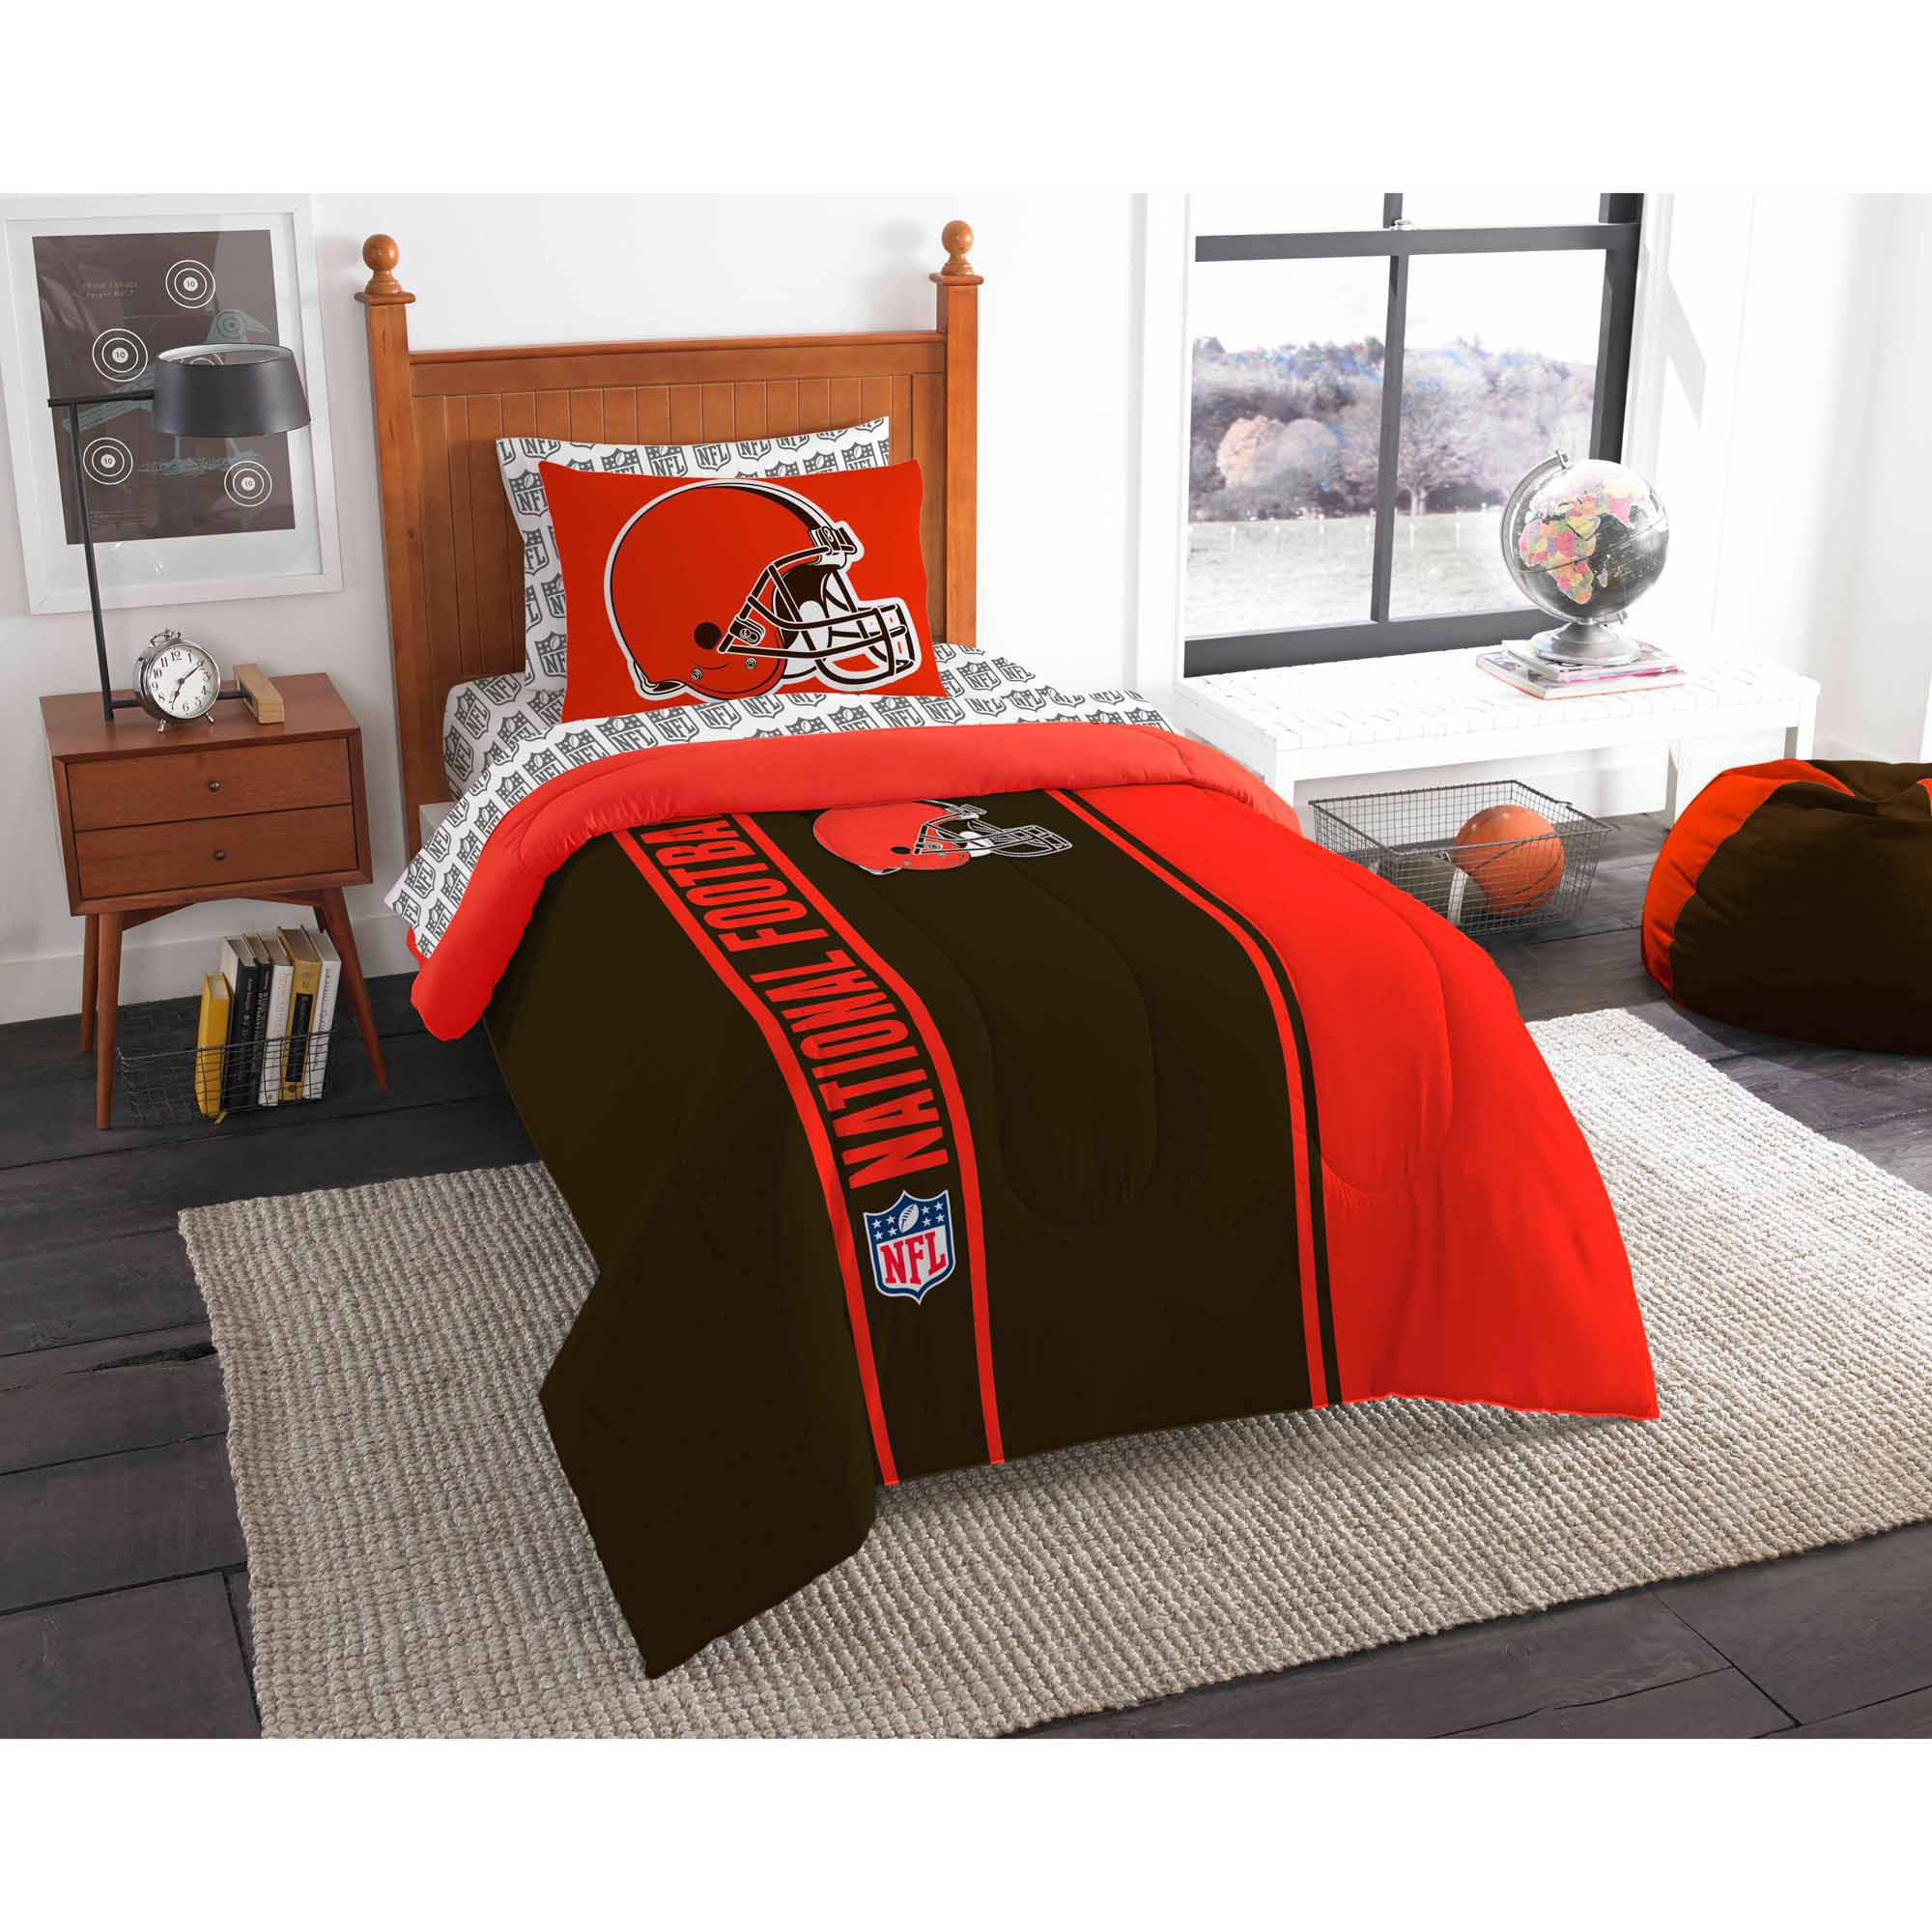 NFL Cleveland Browns Soft and Cozy Bed in a Bag Complete Bedding Set